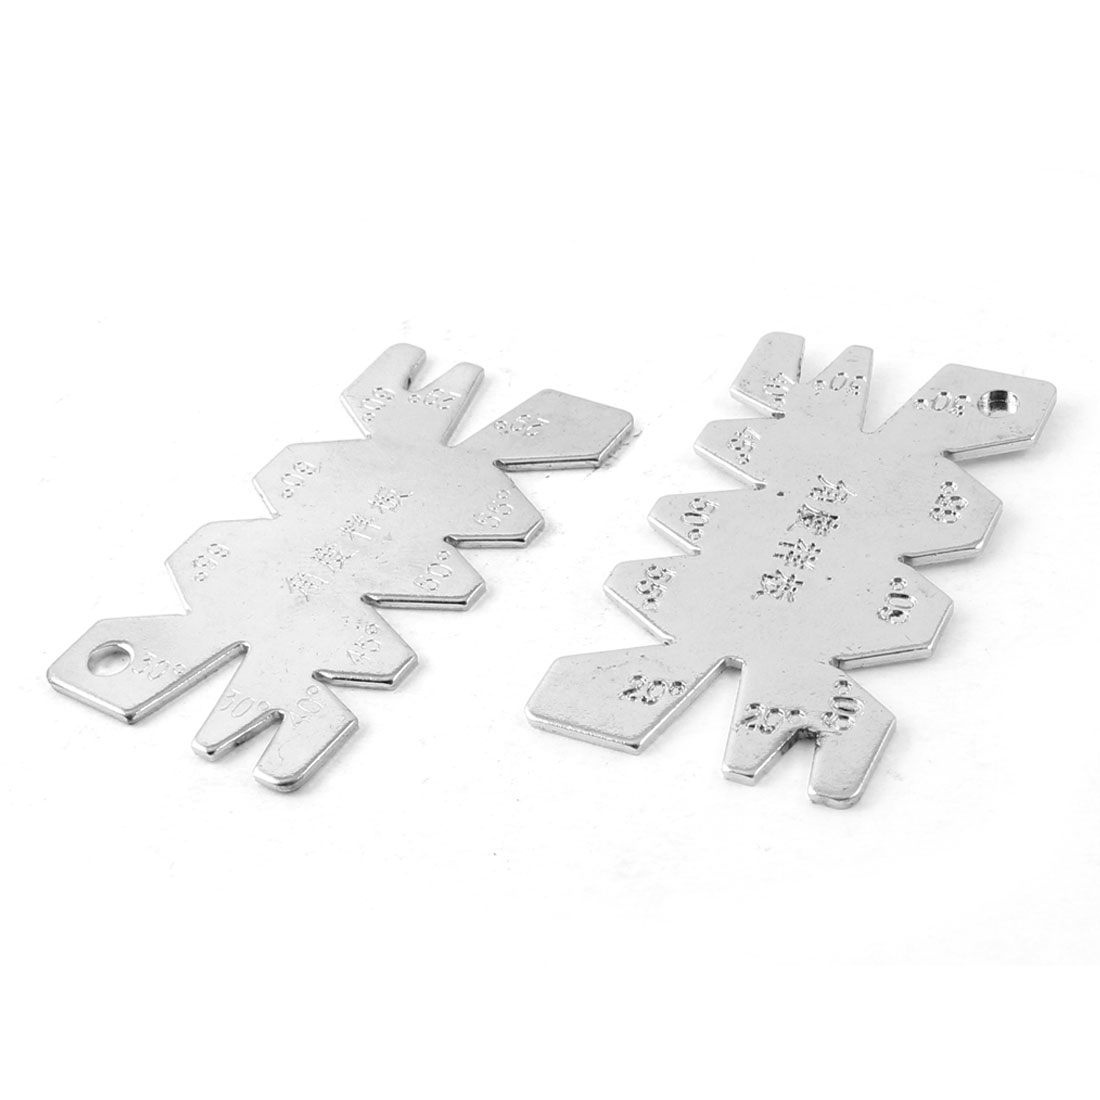 2pcs Screw Cut Angle Measuring Thread Cutting Gauge Gage